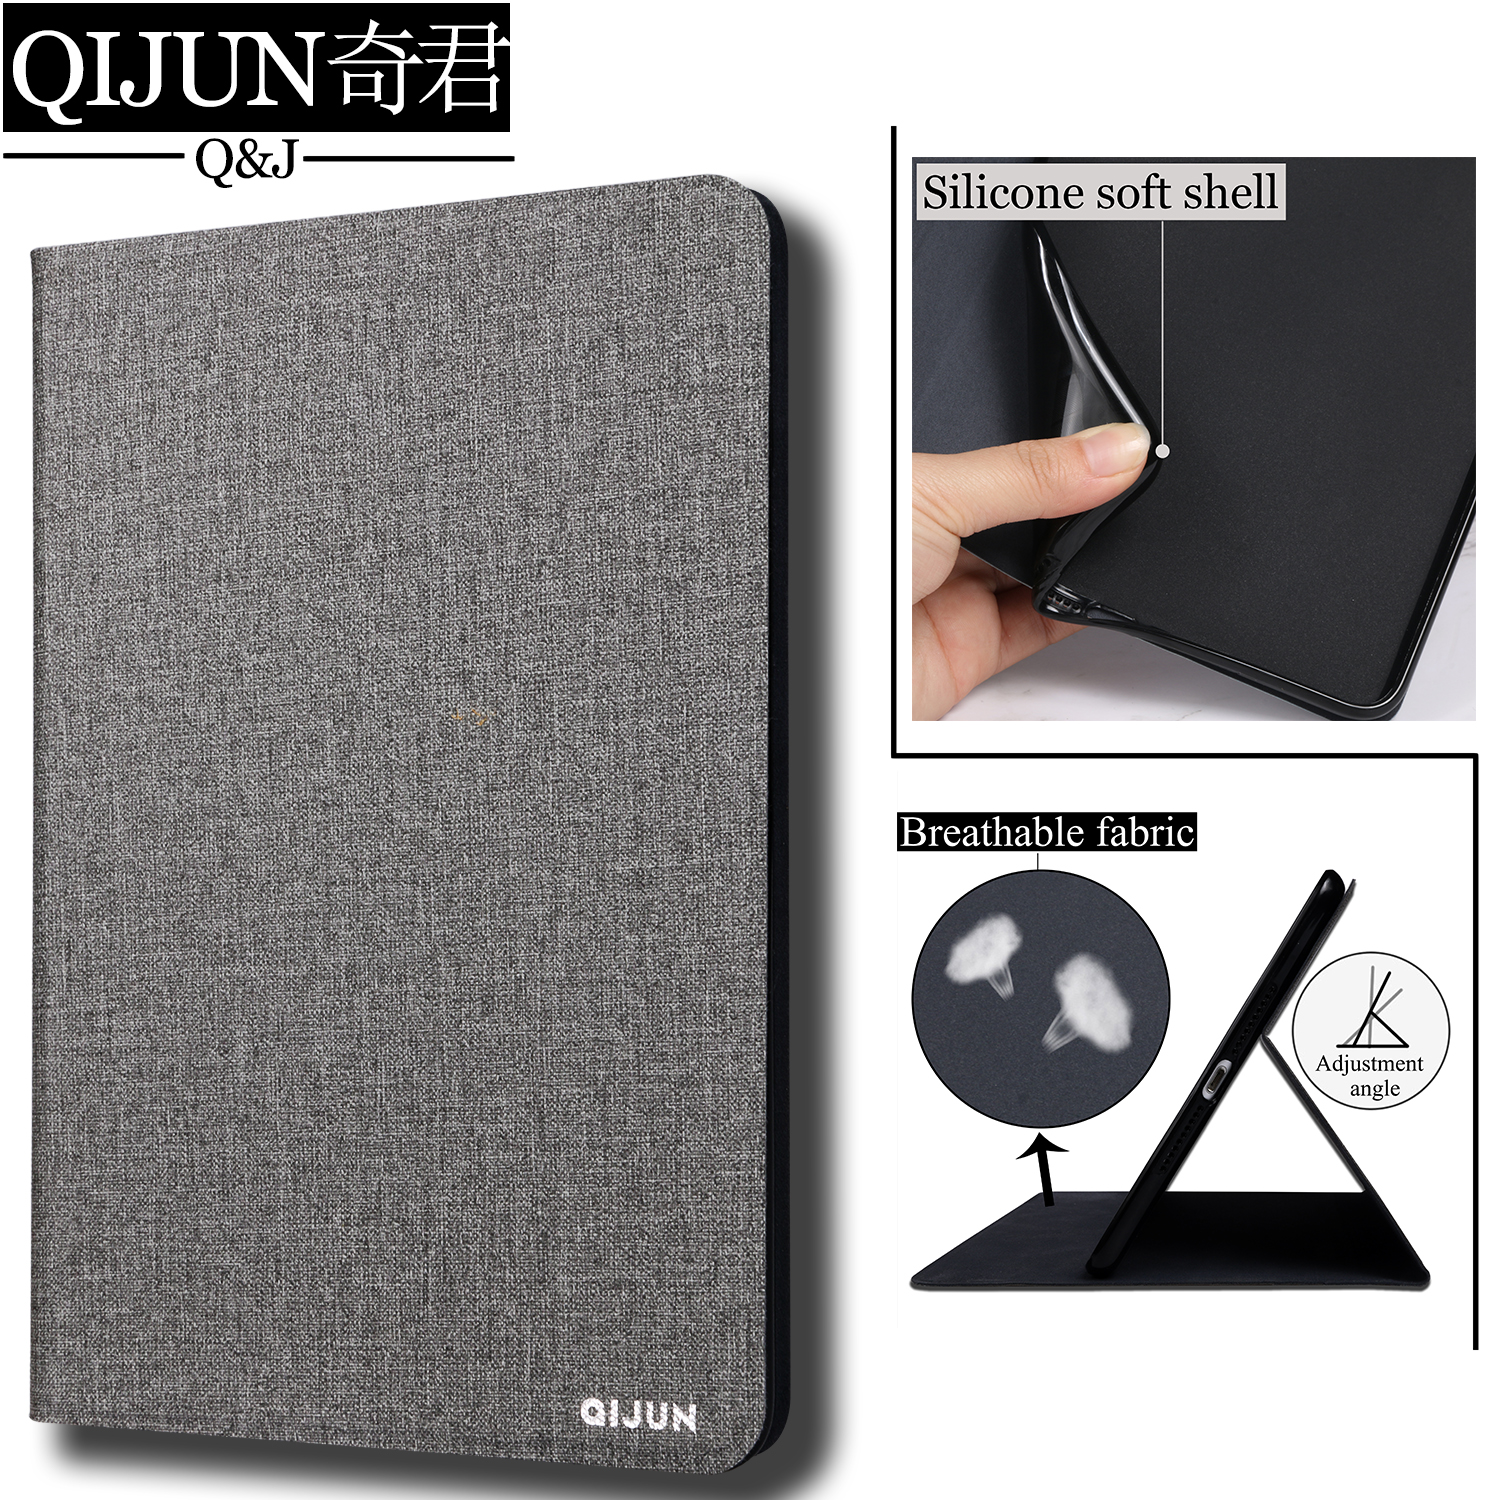 QIJUN tablet flip case for Lenovo A7 50 7 0 quot PU leather Stand Cover Silicone soft shell fundas thin capa coque card for A3500 in Tablets amp e Books Case from Computer amp Office